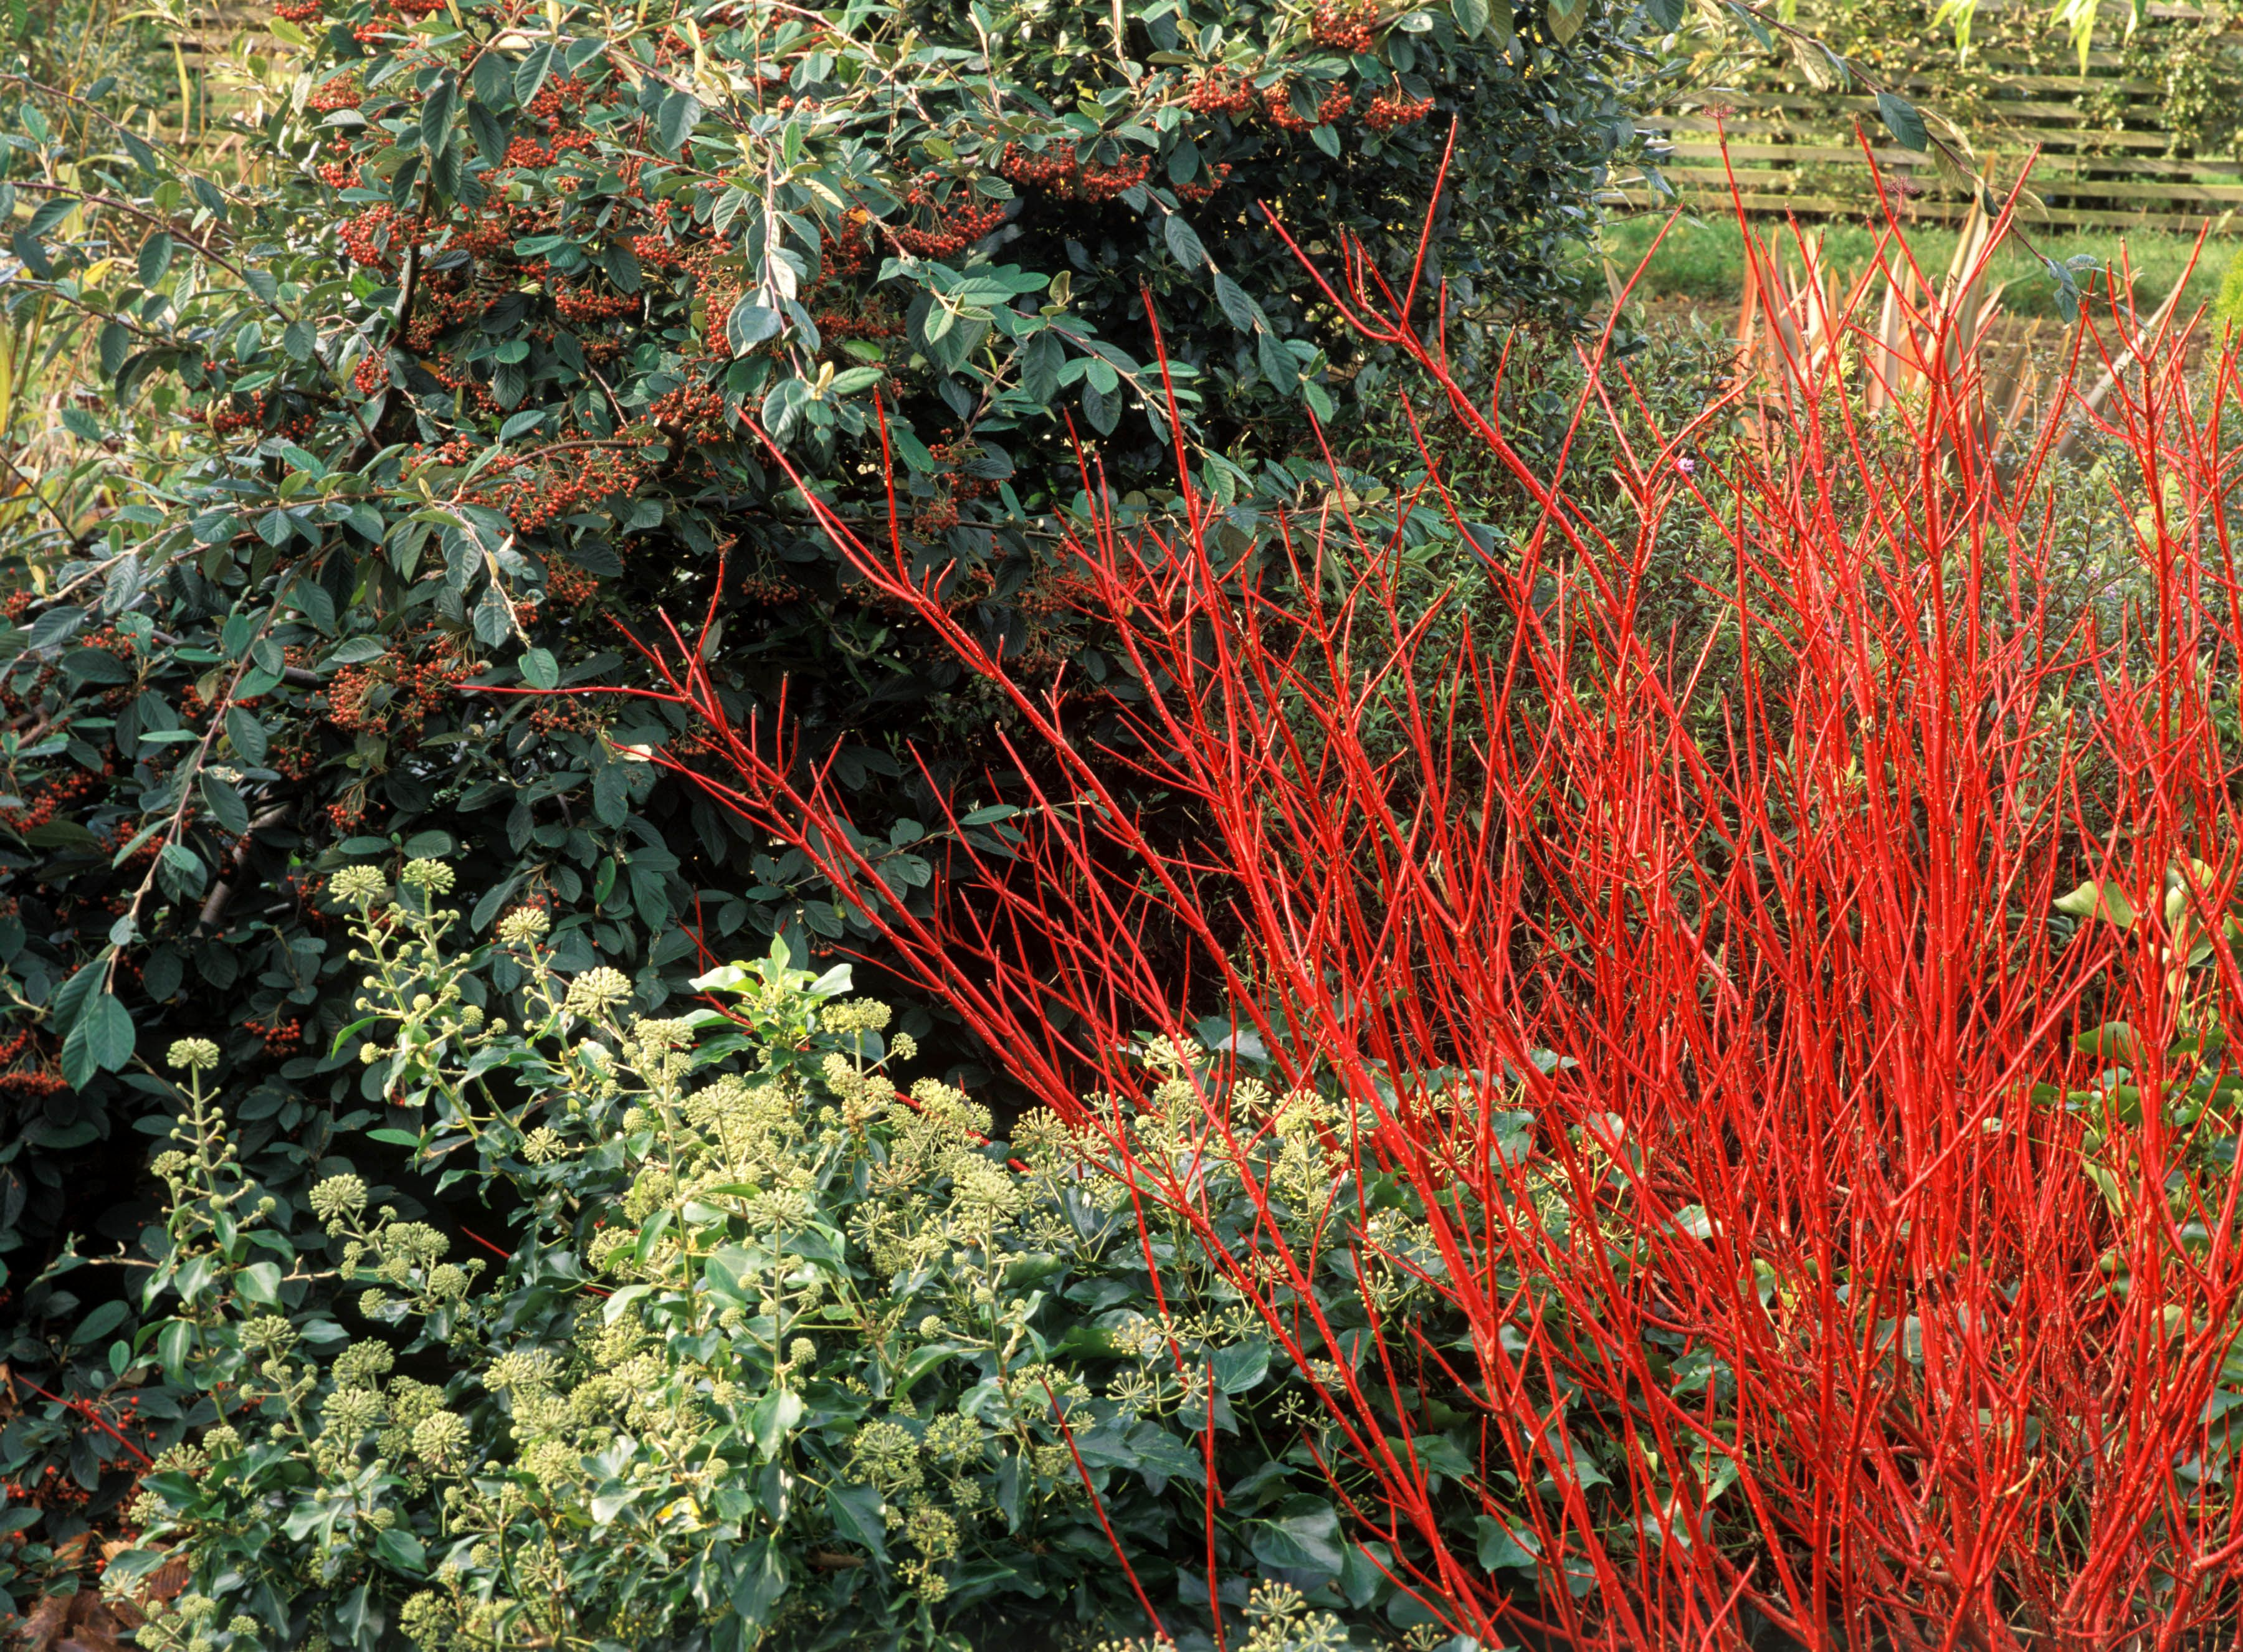 Red-twig dogwood with other plants in background.